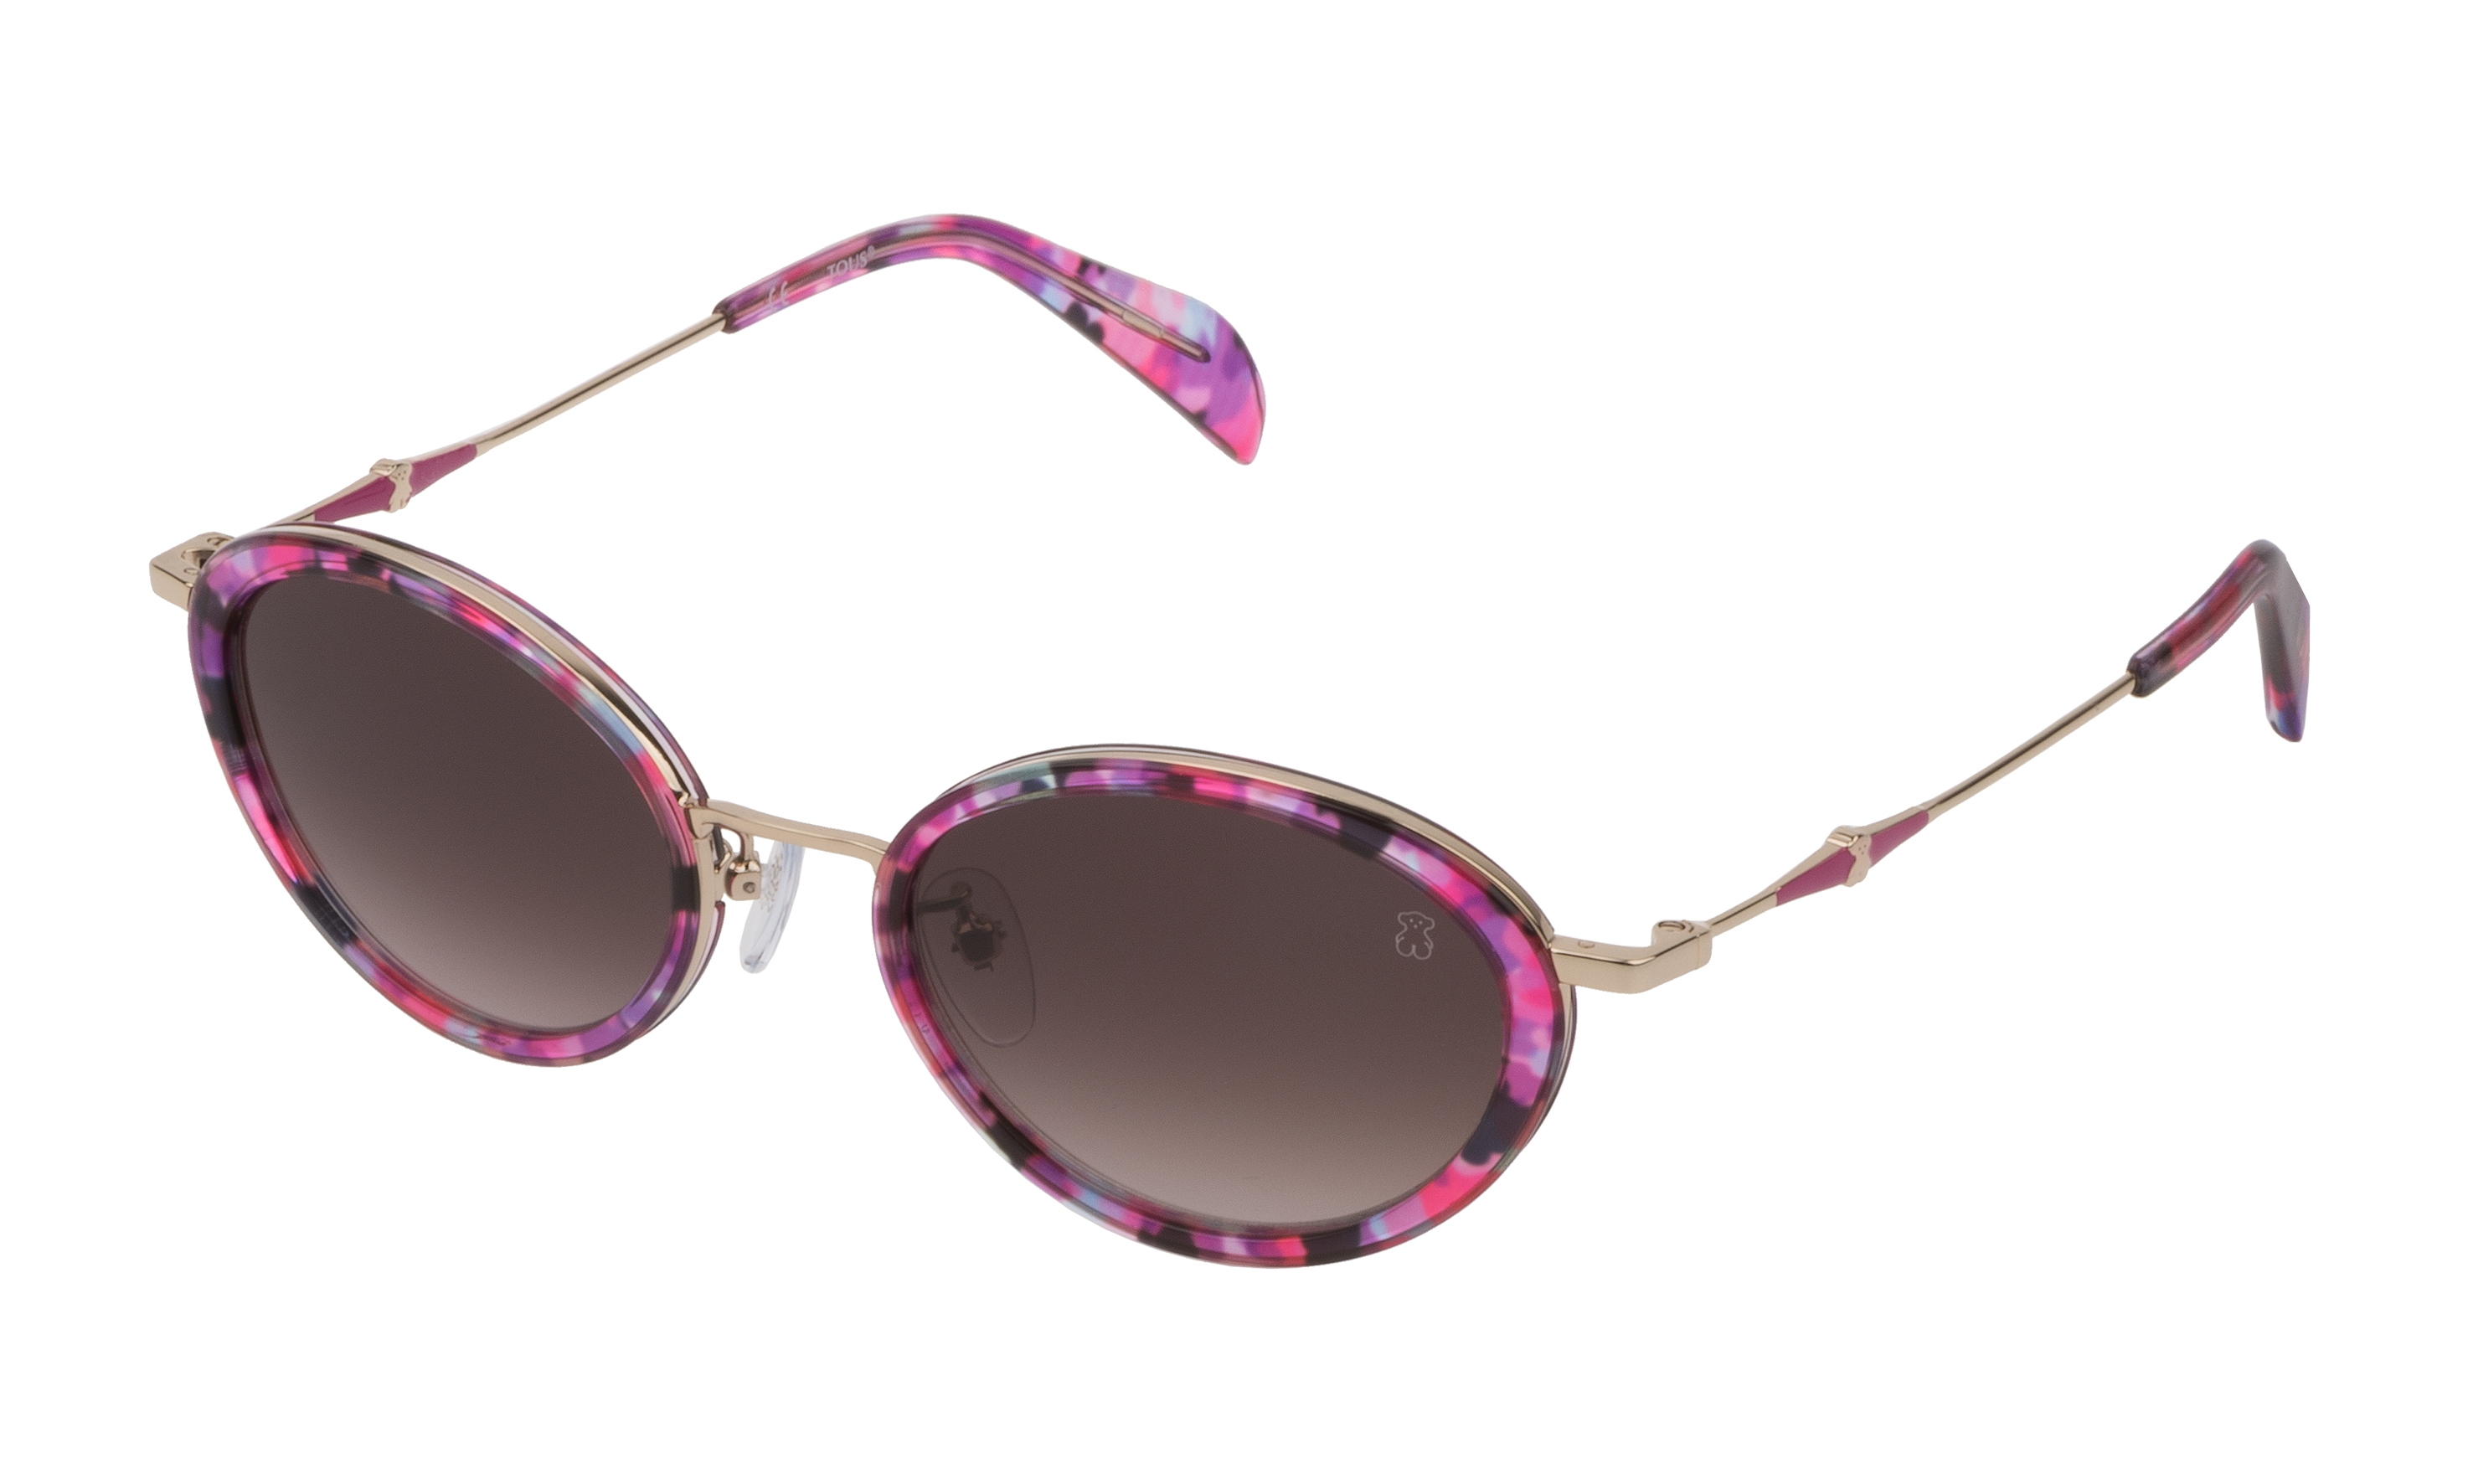 TOUS STO 388 0GED Gafas de sol Mujer